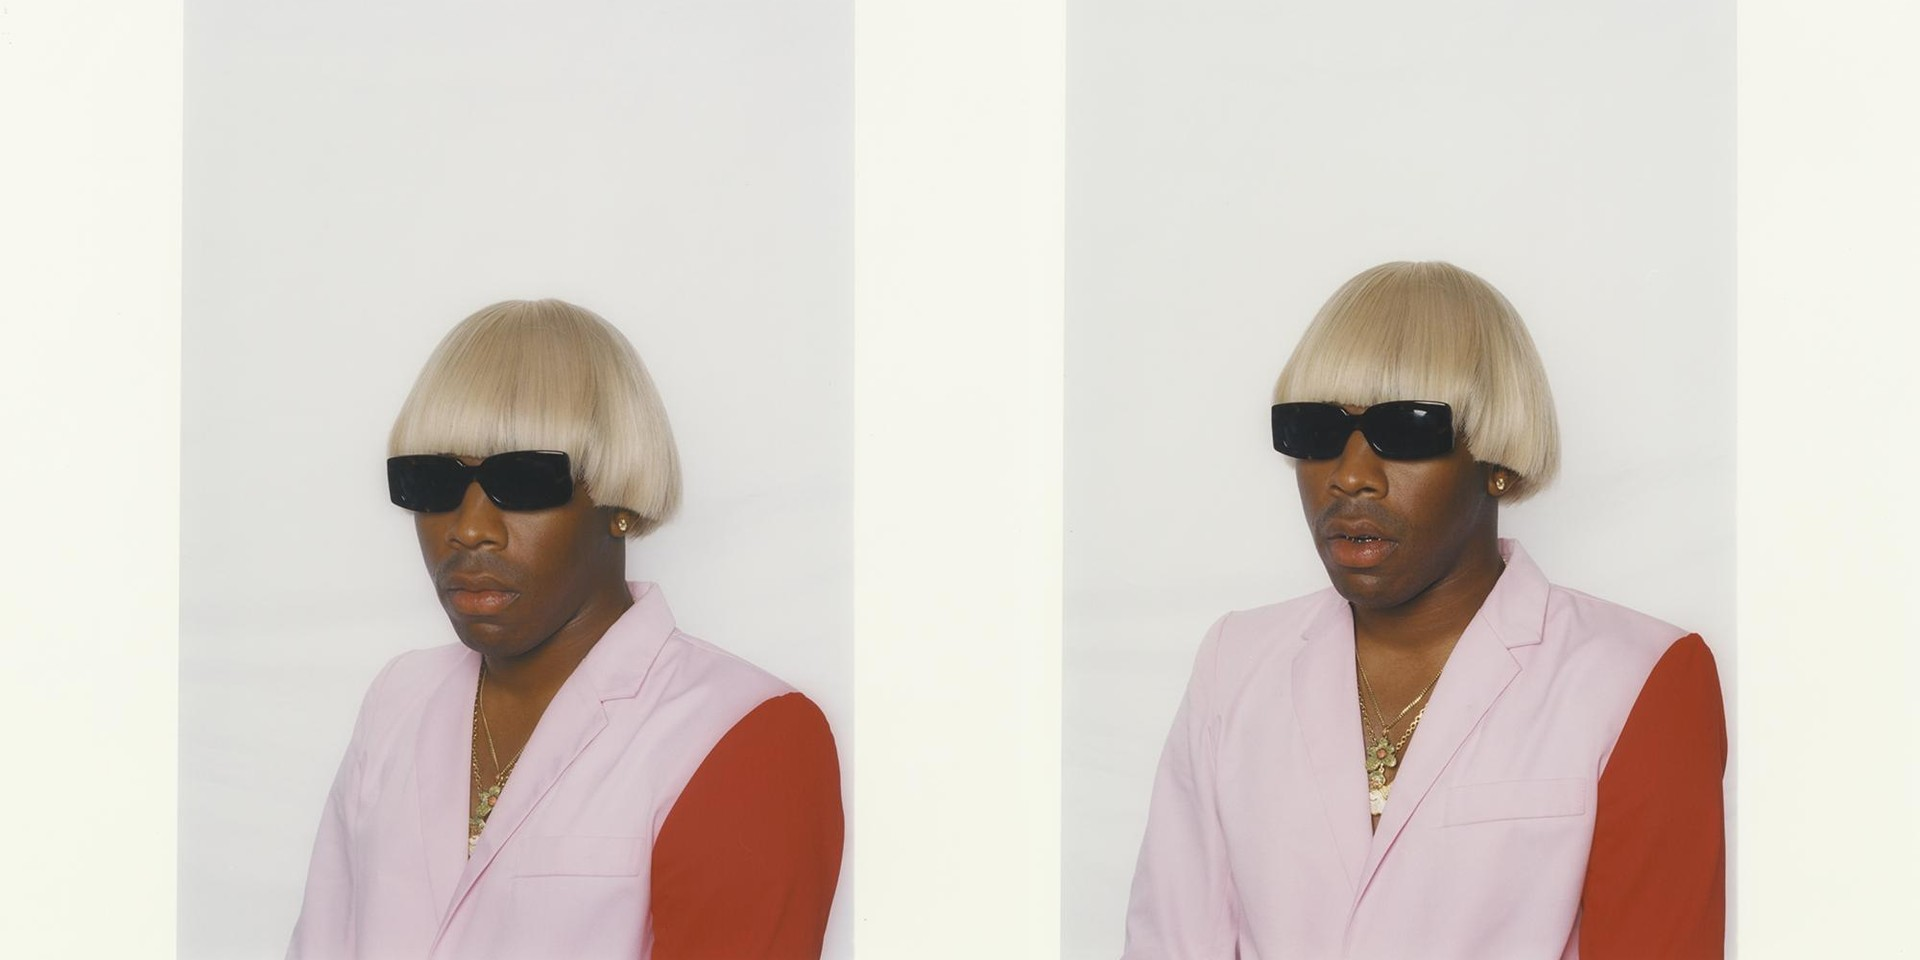 Tyler, the Creator scores first No. 1 album with IGOR